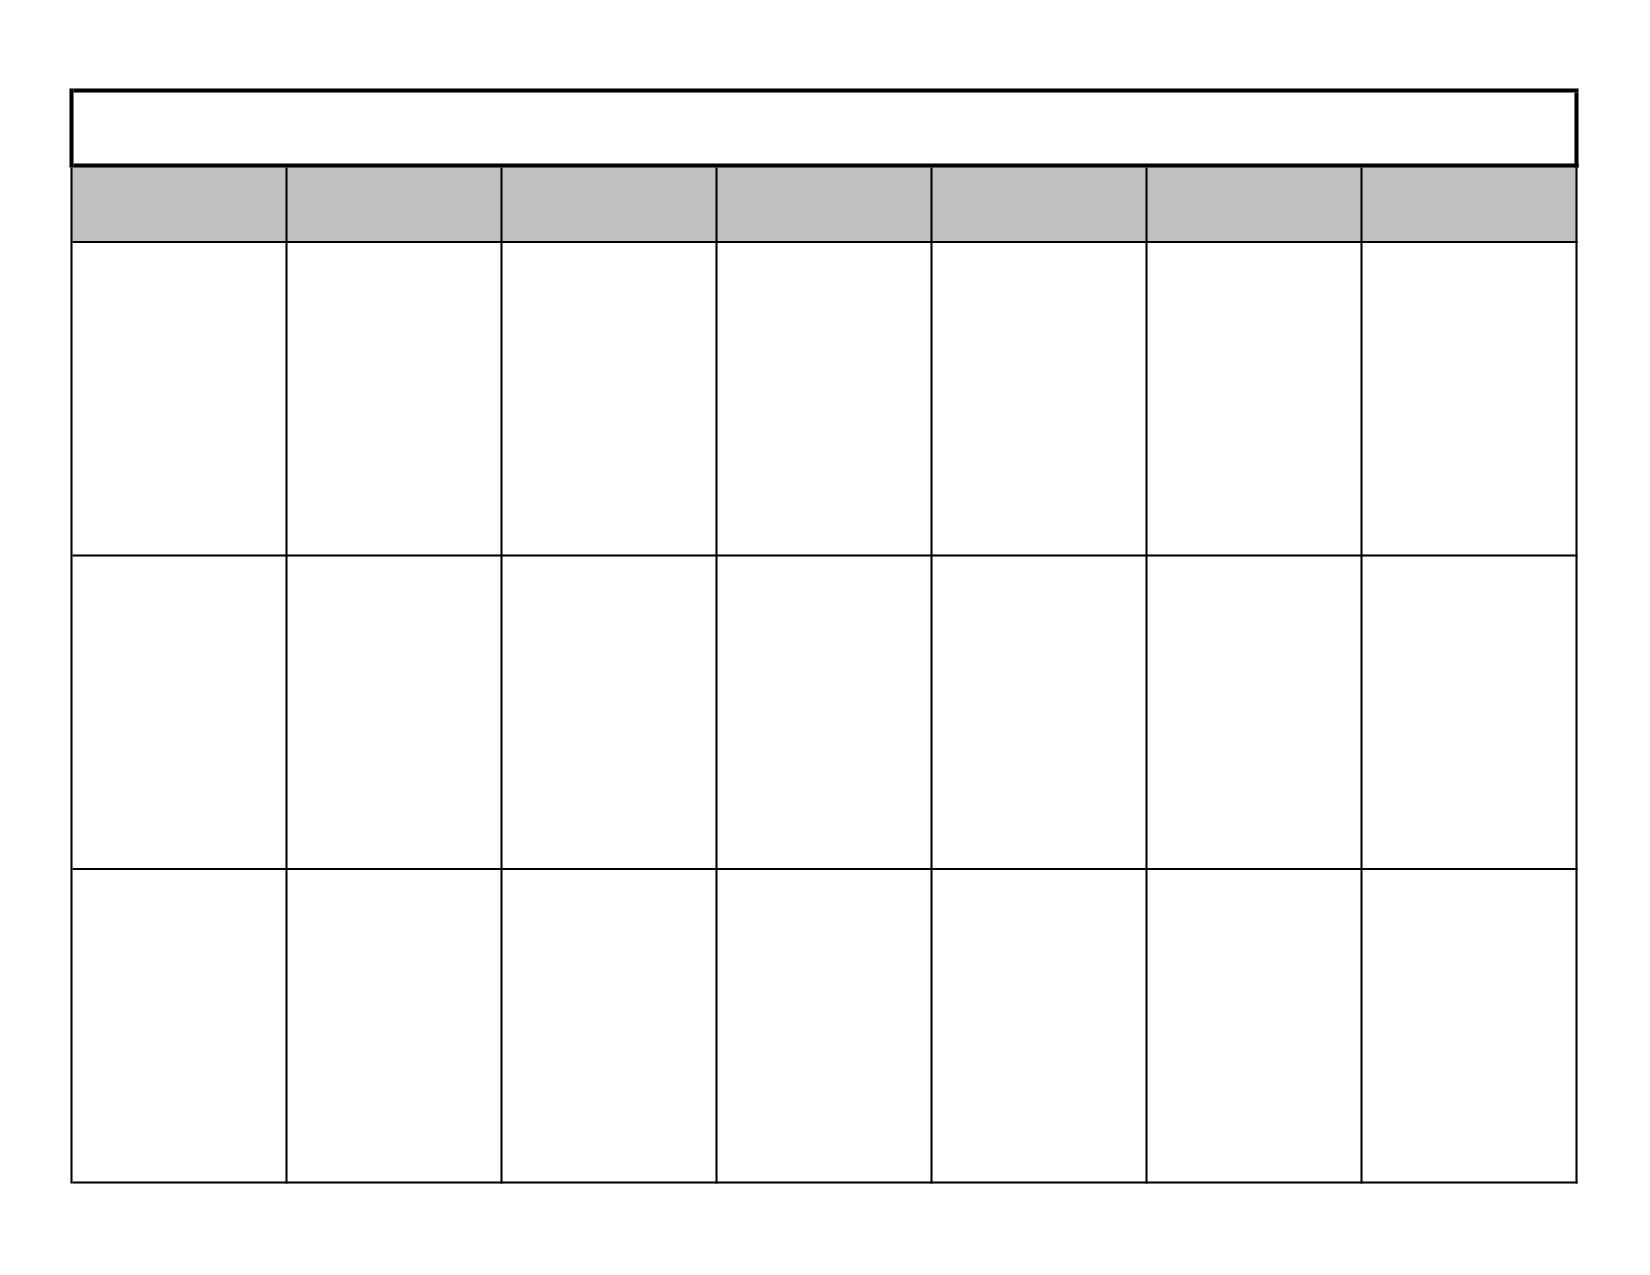 Blank Calendar Template Aplg Planetariums Org Ripping 2 Week-2 Week Schedule Template Printable